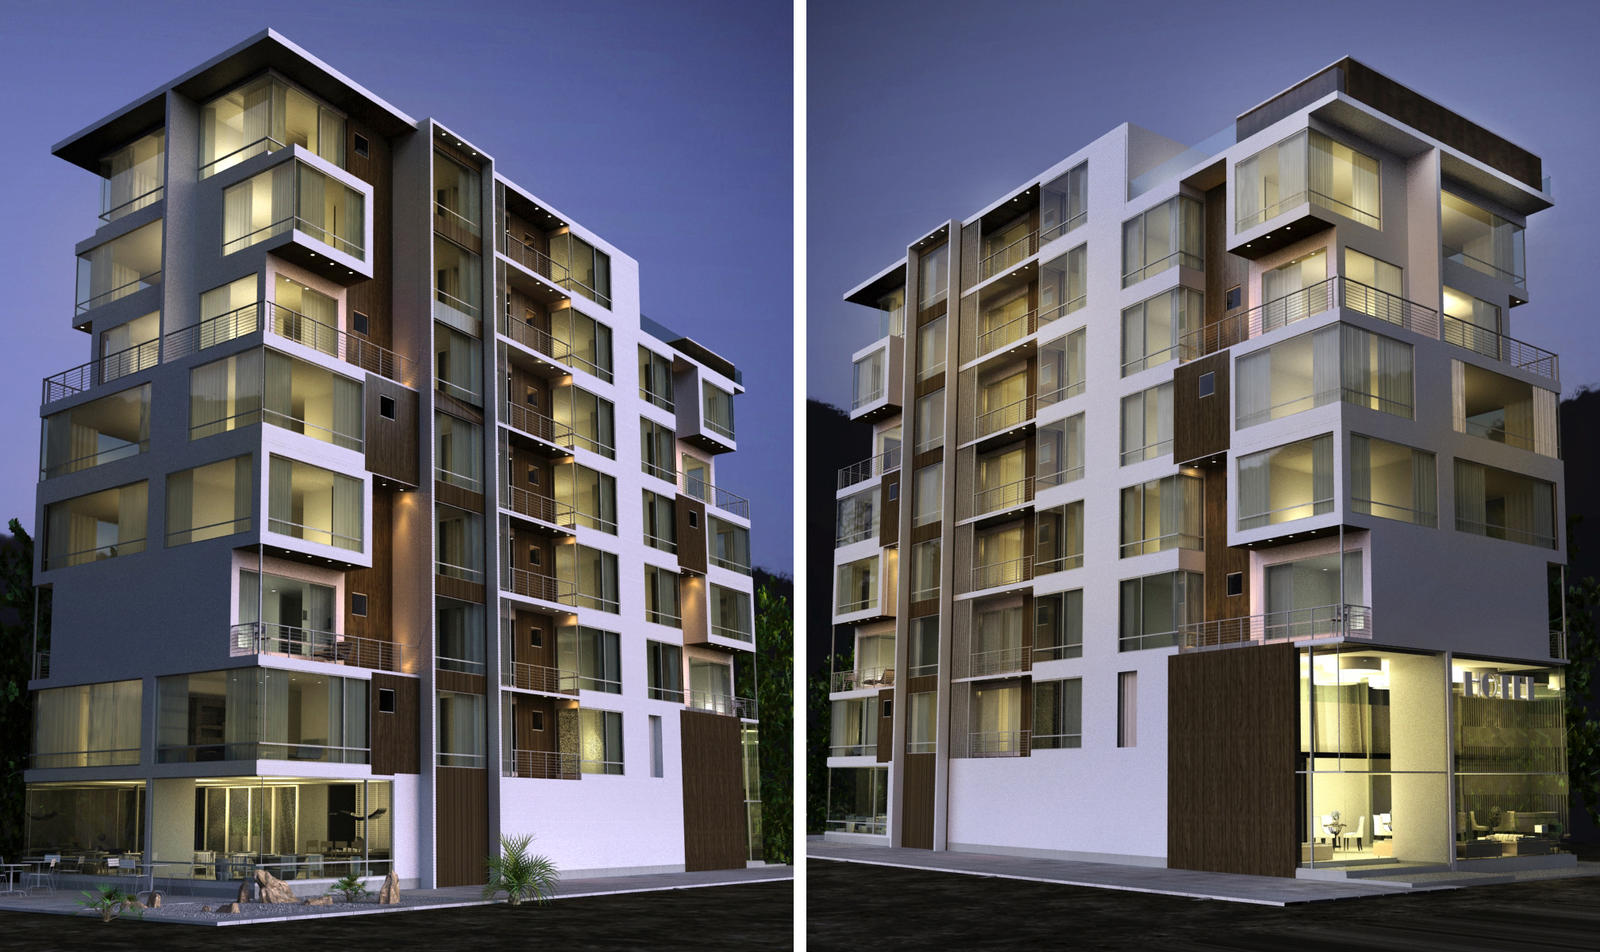 Apartment building by kasrawy on deviantart for Apartment building design ideas